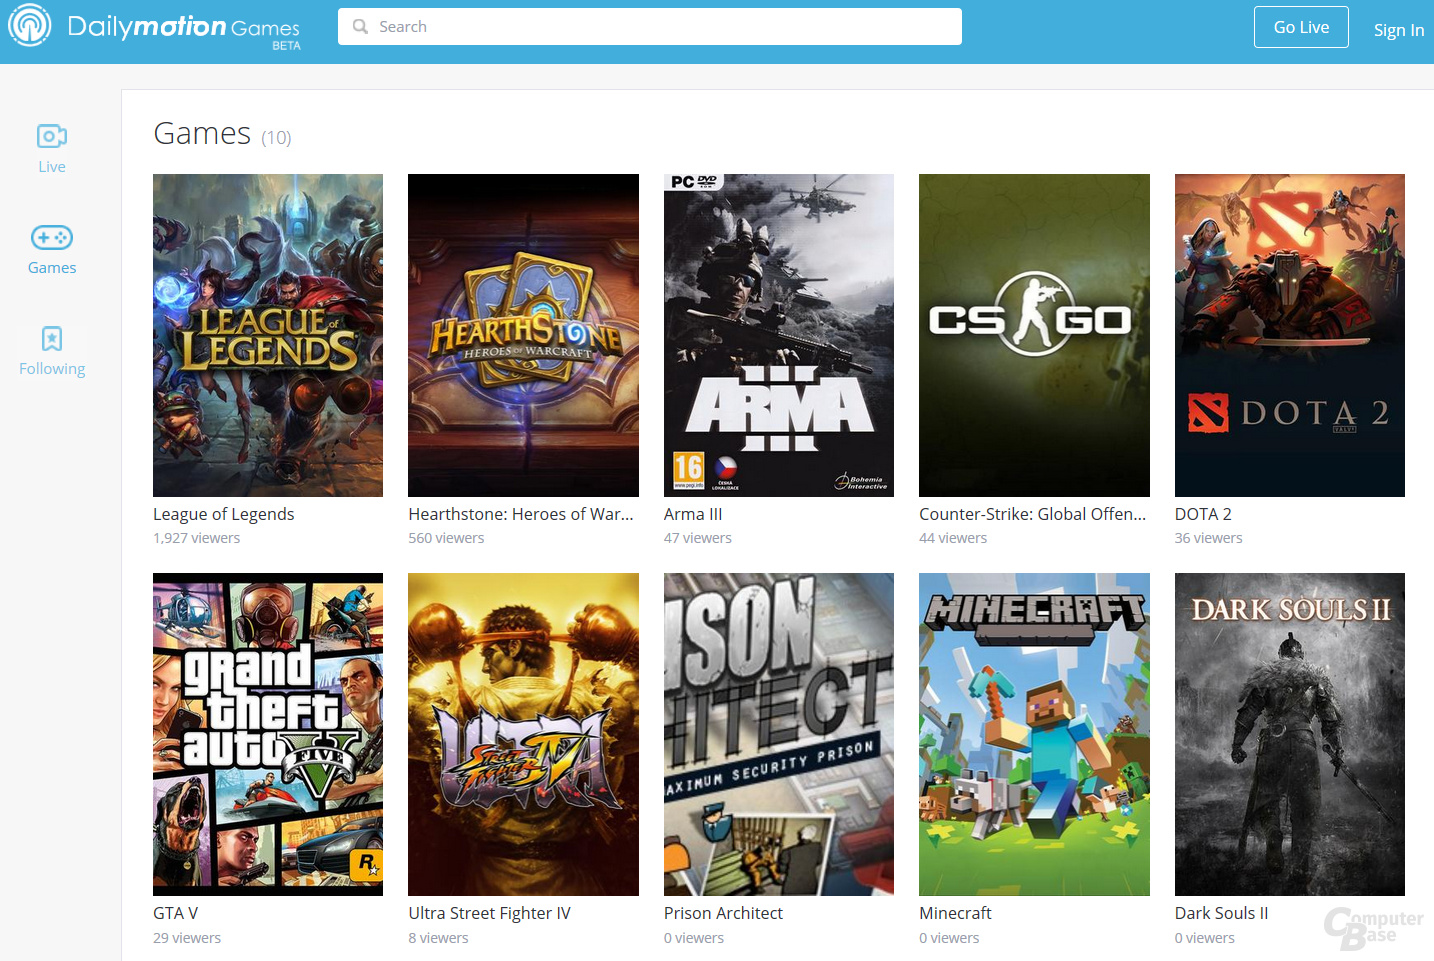 Dailymotion Games (Spiele)